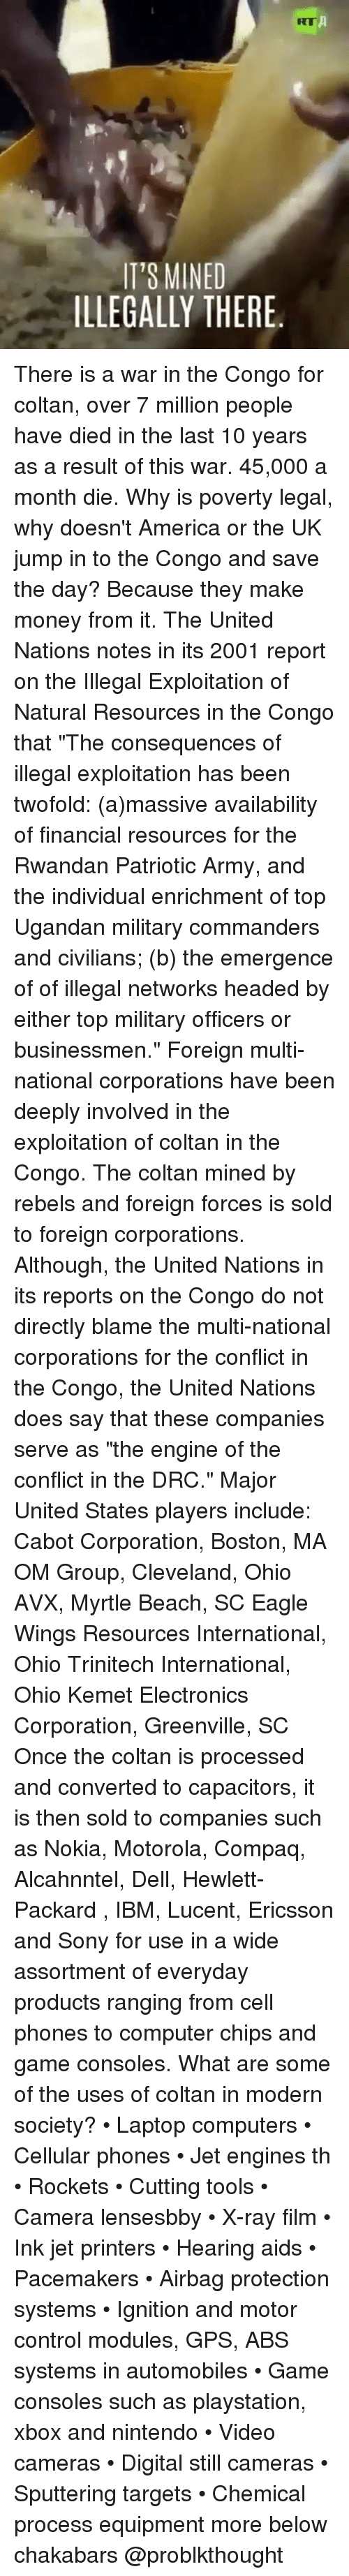 """America, Computers, and Dell: KT  IT'S MINED  ILLEGALLY THERE. There is a war in the Congo for coltan, over 7 million people have died in the last 10 years as a result of this war. 45,000 a month die. Why is poverty legal, why doesn't America or the UK jump in to the Congo and save the day? Because they make money from it. The United Nations notes in its 2001 report on the Illegal Exploitation of Natural Resources in the Congo that """"The consequences of illegal exploitation has been twofold: (a)massive availability of financial resources for the Rwandan Patriotic Army, and the individual enrichment of top Ugandan military commanders and civilians; (b) the emergence of of illegal networks headed by either top military officers or businessmen."""" Foreign multi-national corporations have been deeply involved in the exploitation of coltan in the Congo. The coltan mined by rebels and foreign forces is sold to foreign corporations. Although, the United Nations in its reports on the Congo do not directly blame the multi-national corporations for the conflict in the Congo, the United Nations does say that these companies serve as """"the engine of the conflict in the DRC."""" Major United States players include: Cabot Corporation, Boston, MA OM Group, Cleveland, Ohio AVX, Myrtle Beach, SC Eagle Wings Resources International, Ohio Trinitech International, Ohio Kemet Electronics Corporation, Greenville, SC Once the coltan is processed and converted to capacitors, it is then sold to companies such as Nokia, Motorola, Compaq, Alcahnntel, Dell, Hewlett-Packard , IBM, Lucent, Ericsson and Sony for use in a wide assortment of everyday products ranging from cell phones to computer chips and game consoles. What are some of the uses of coltan in modern society? • Laptop computers • Cellular phones • Jet engines th • Rockets • Cutting tools • Camera lensesbby • X-ray film • Ink jet printers • Hearing aids • Pacemakers • Airbag protection systems • Ignition and motor control modules, GPS, ABS s"""